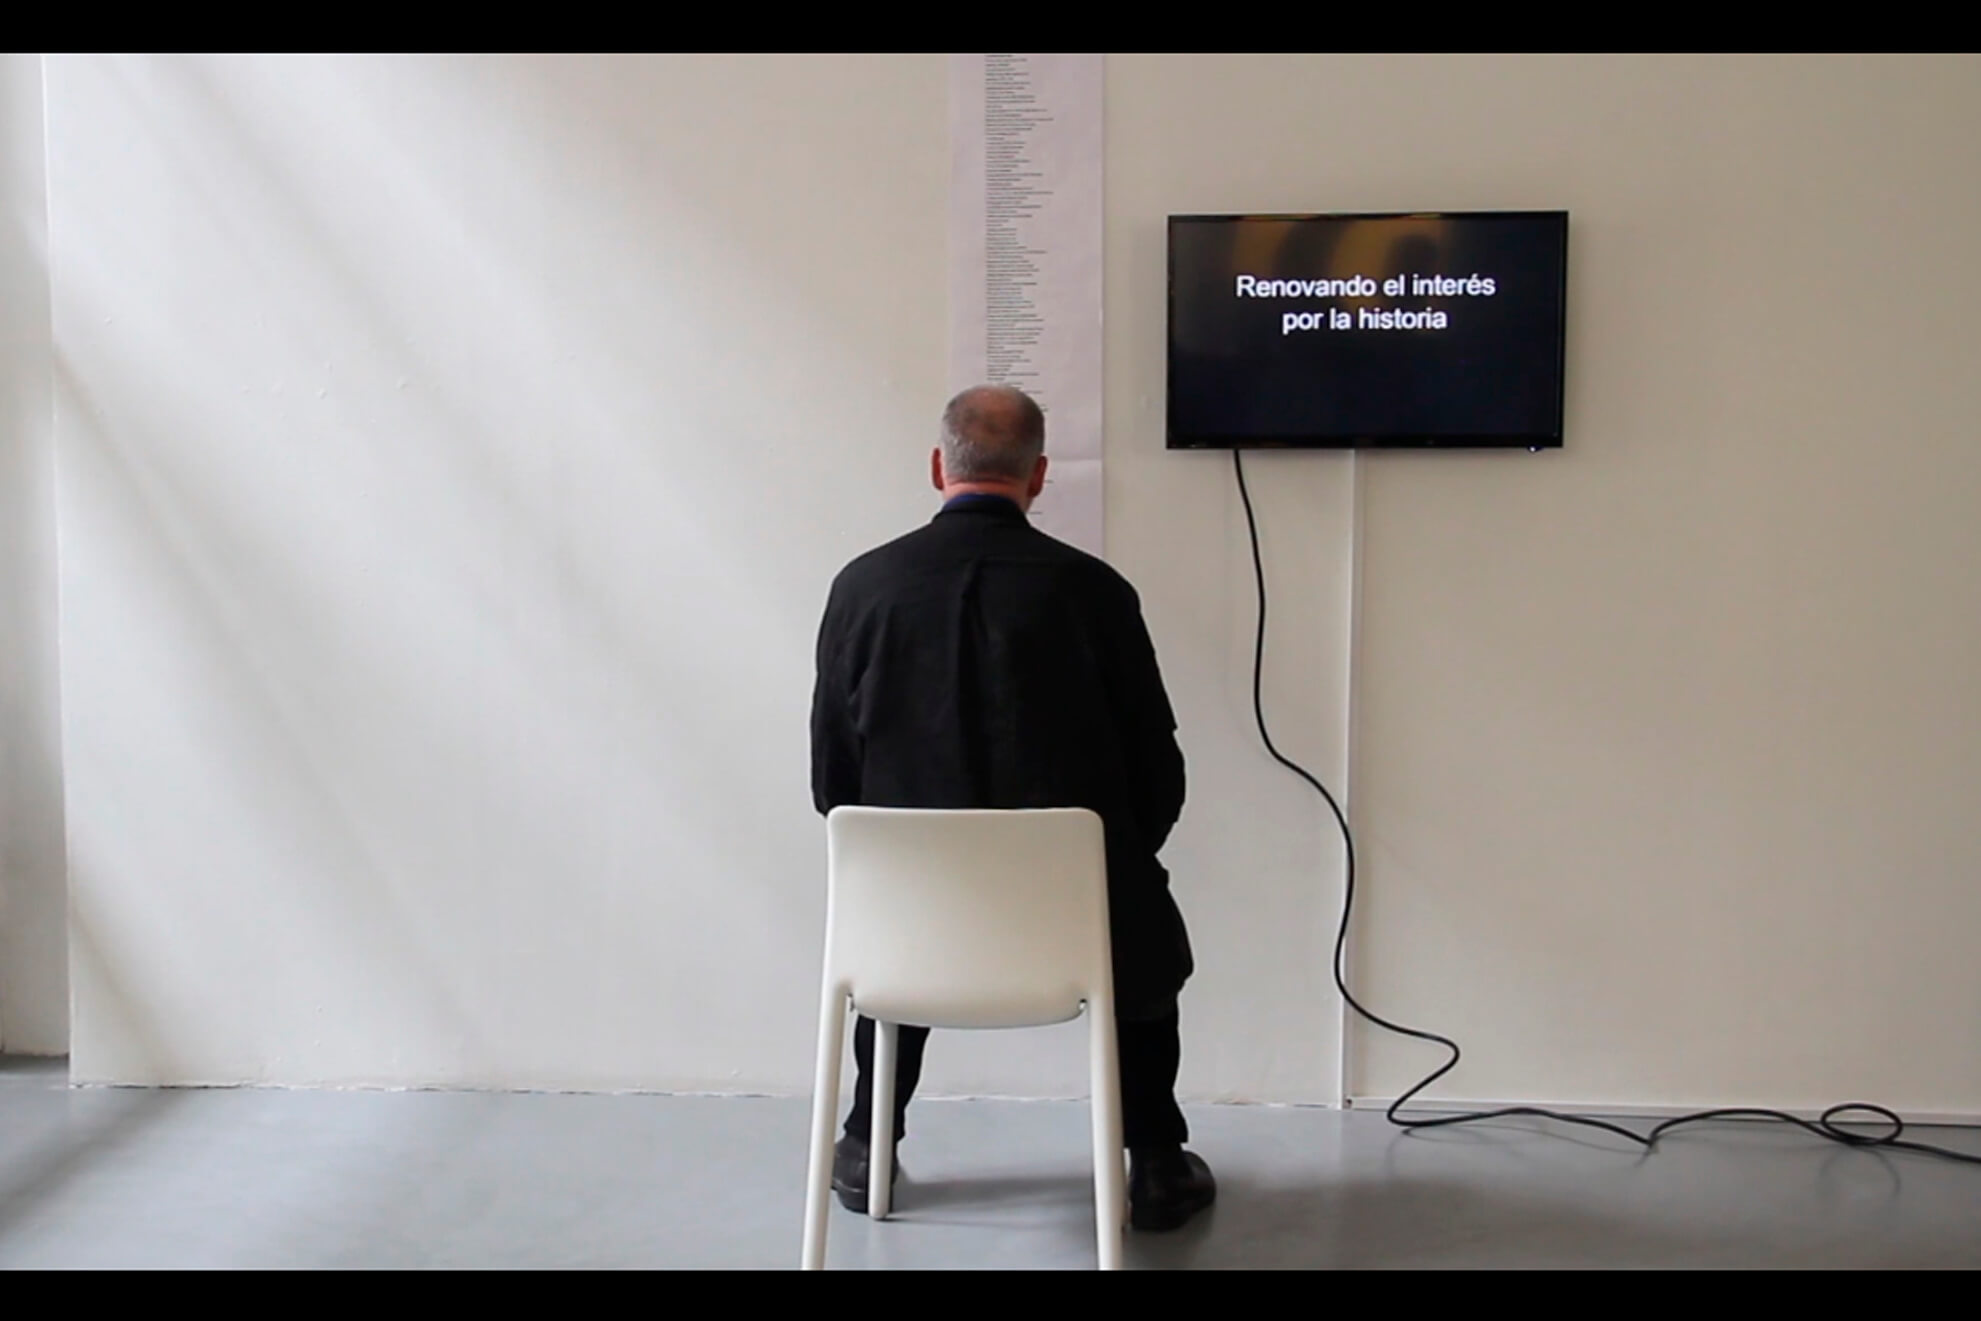 MATT MULLICAN. Video of the reading of: Essex (Detail on an Imaginary Life frim Birth to Death), 1973. (Detail) | Ella té molts noms / Ella tiene muchos nombres / She has many names | ProjecteSD